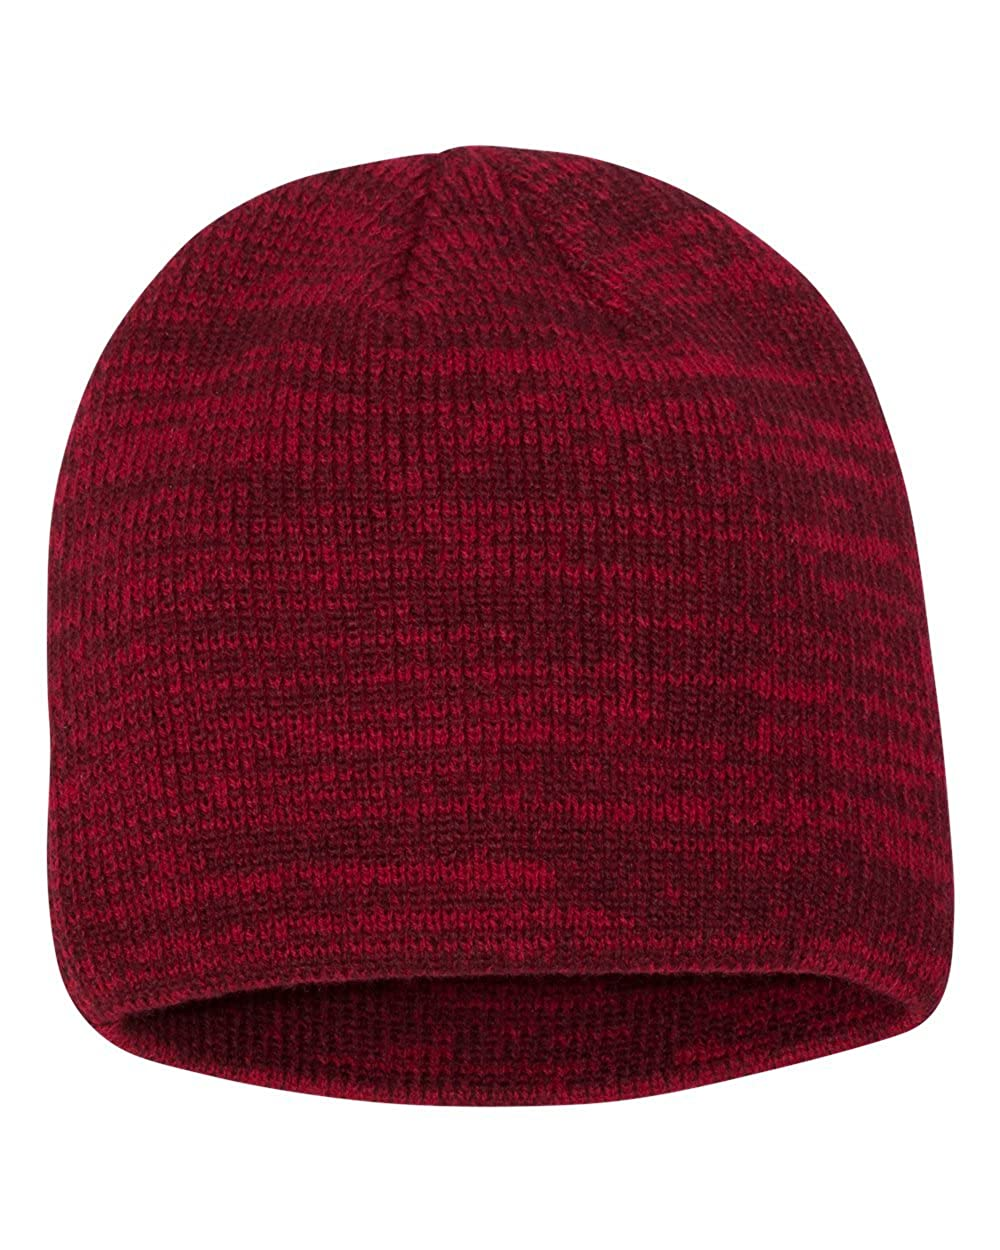 97ad86e2596 SNAP SKULL Knitted Marled Beanie Cap Winter Unisex Thick Hat Color Beanies  (Black Dark Grey) at Amazon Women s Clothing store